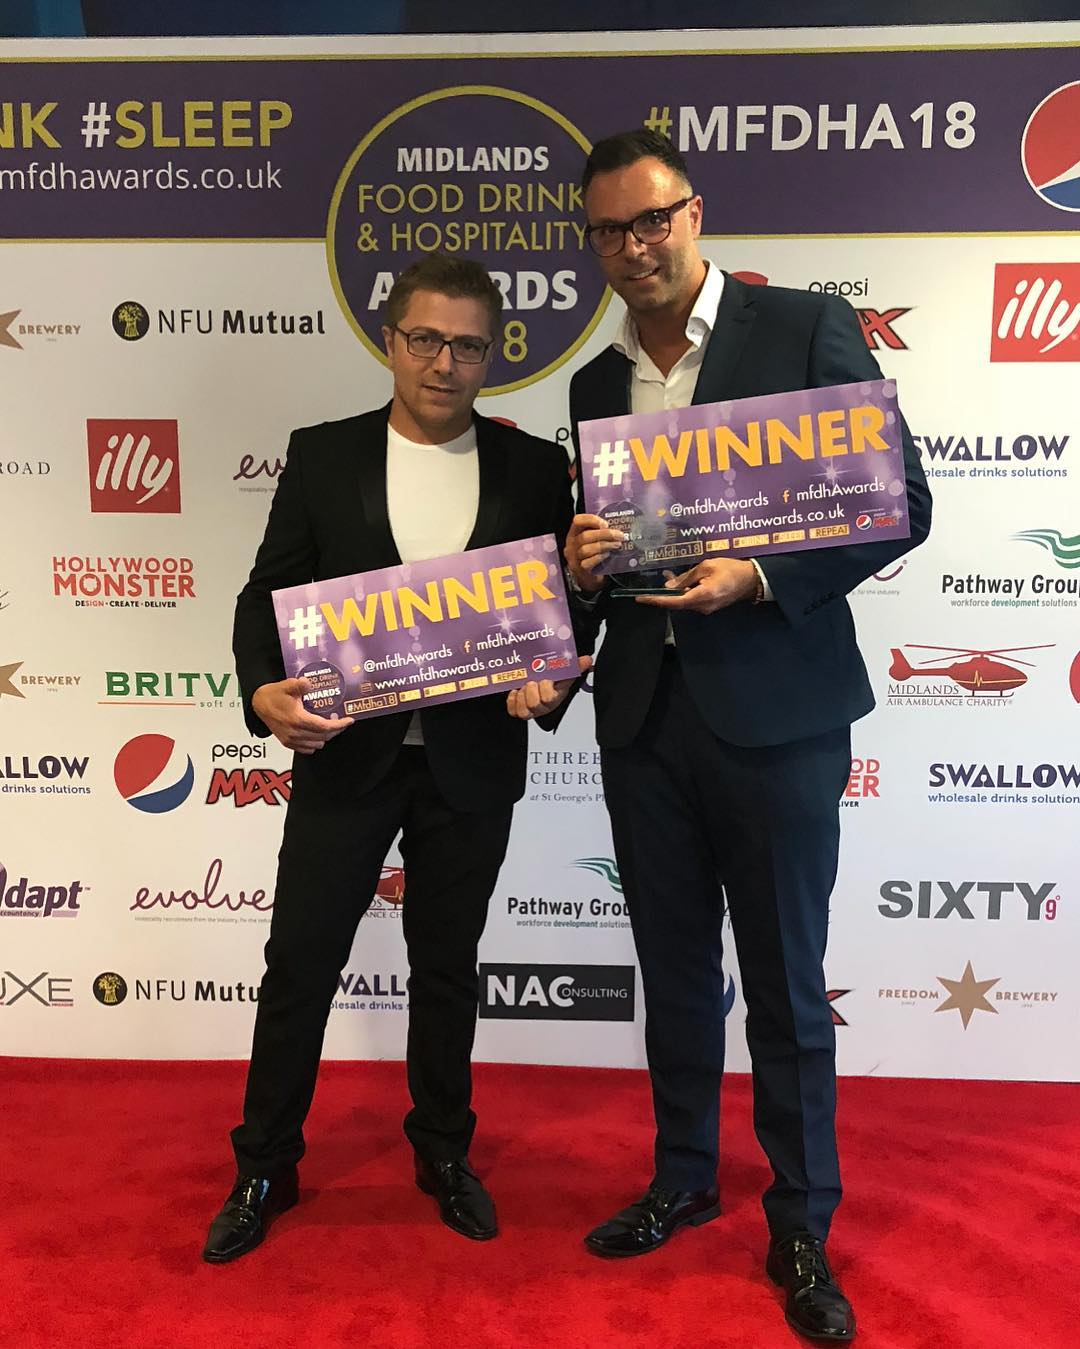 SAPORI RESTAURANT & BAR CROWNED BEST ITALIAN RESTAURANT IN MIDLANDS